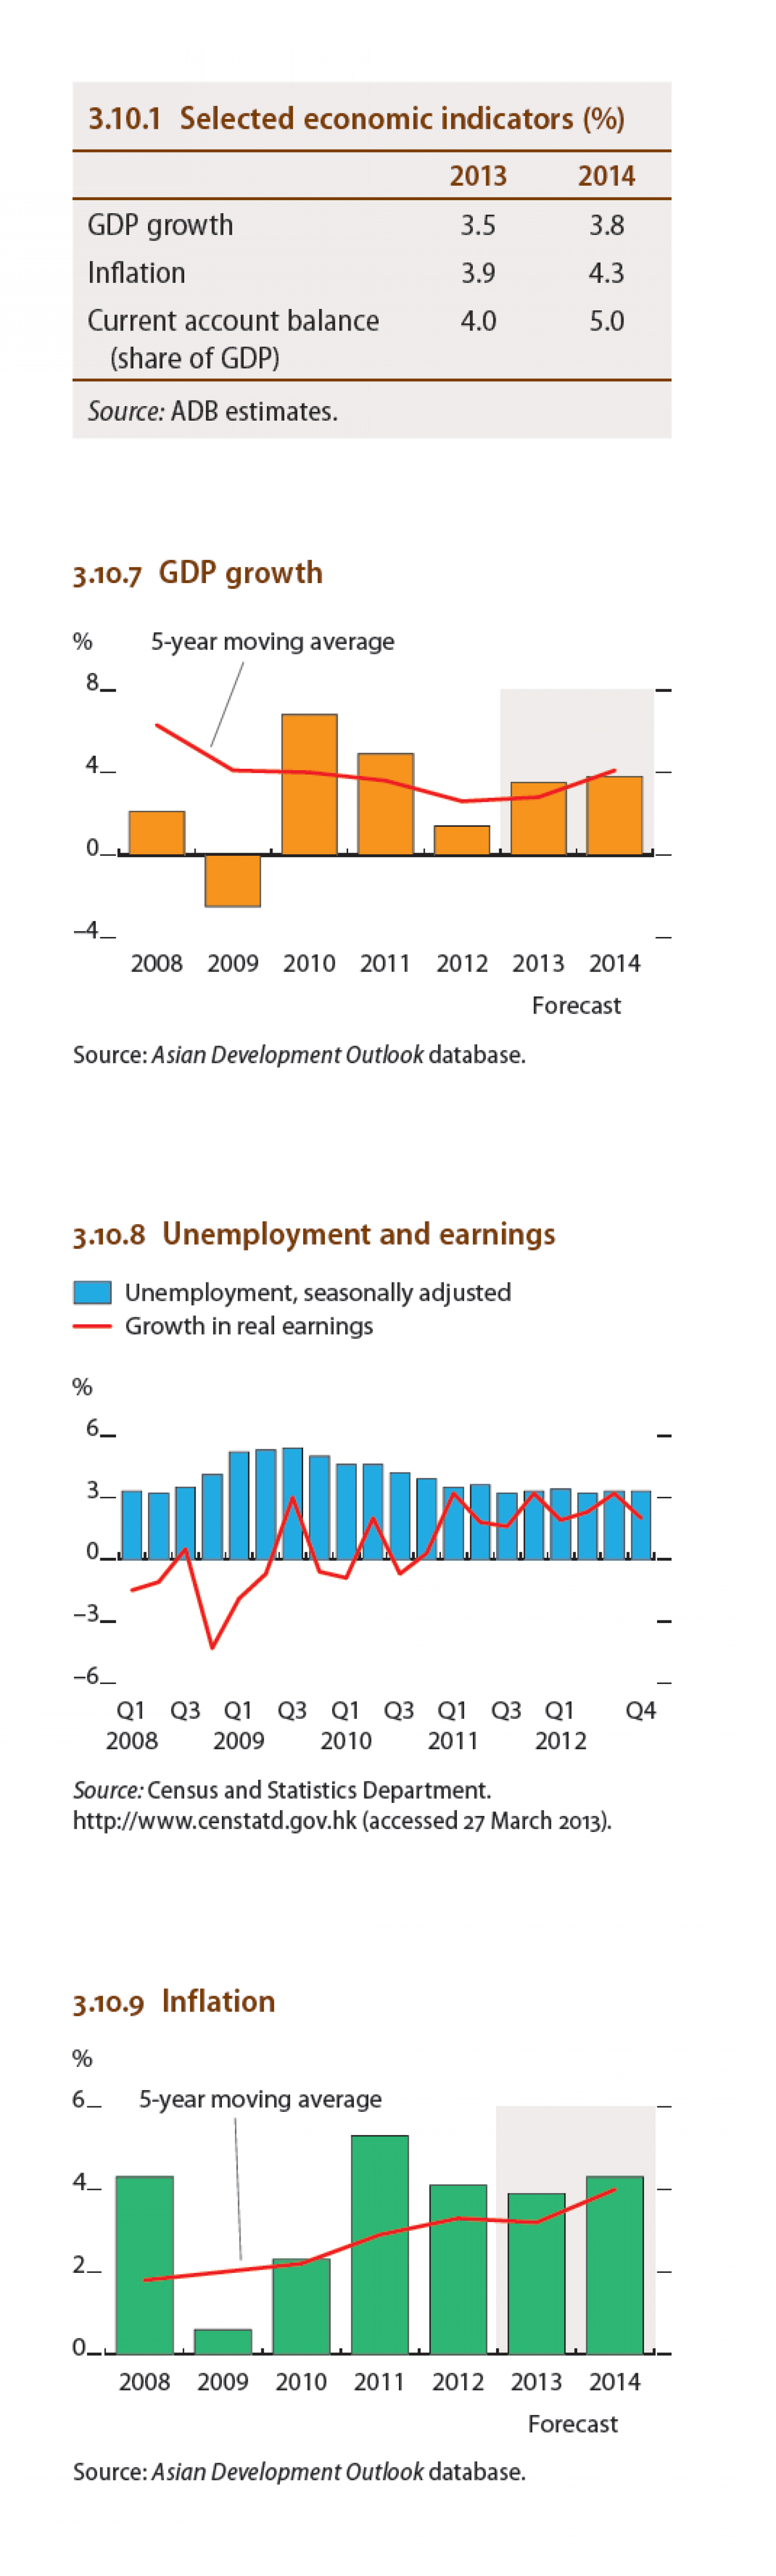 Hong Kong : Selected economic indicators, GDP growth, Inflation, Unemployment and earnings Infographic